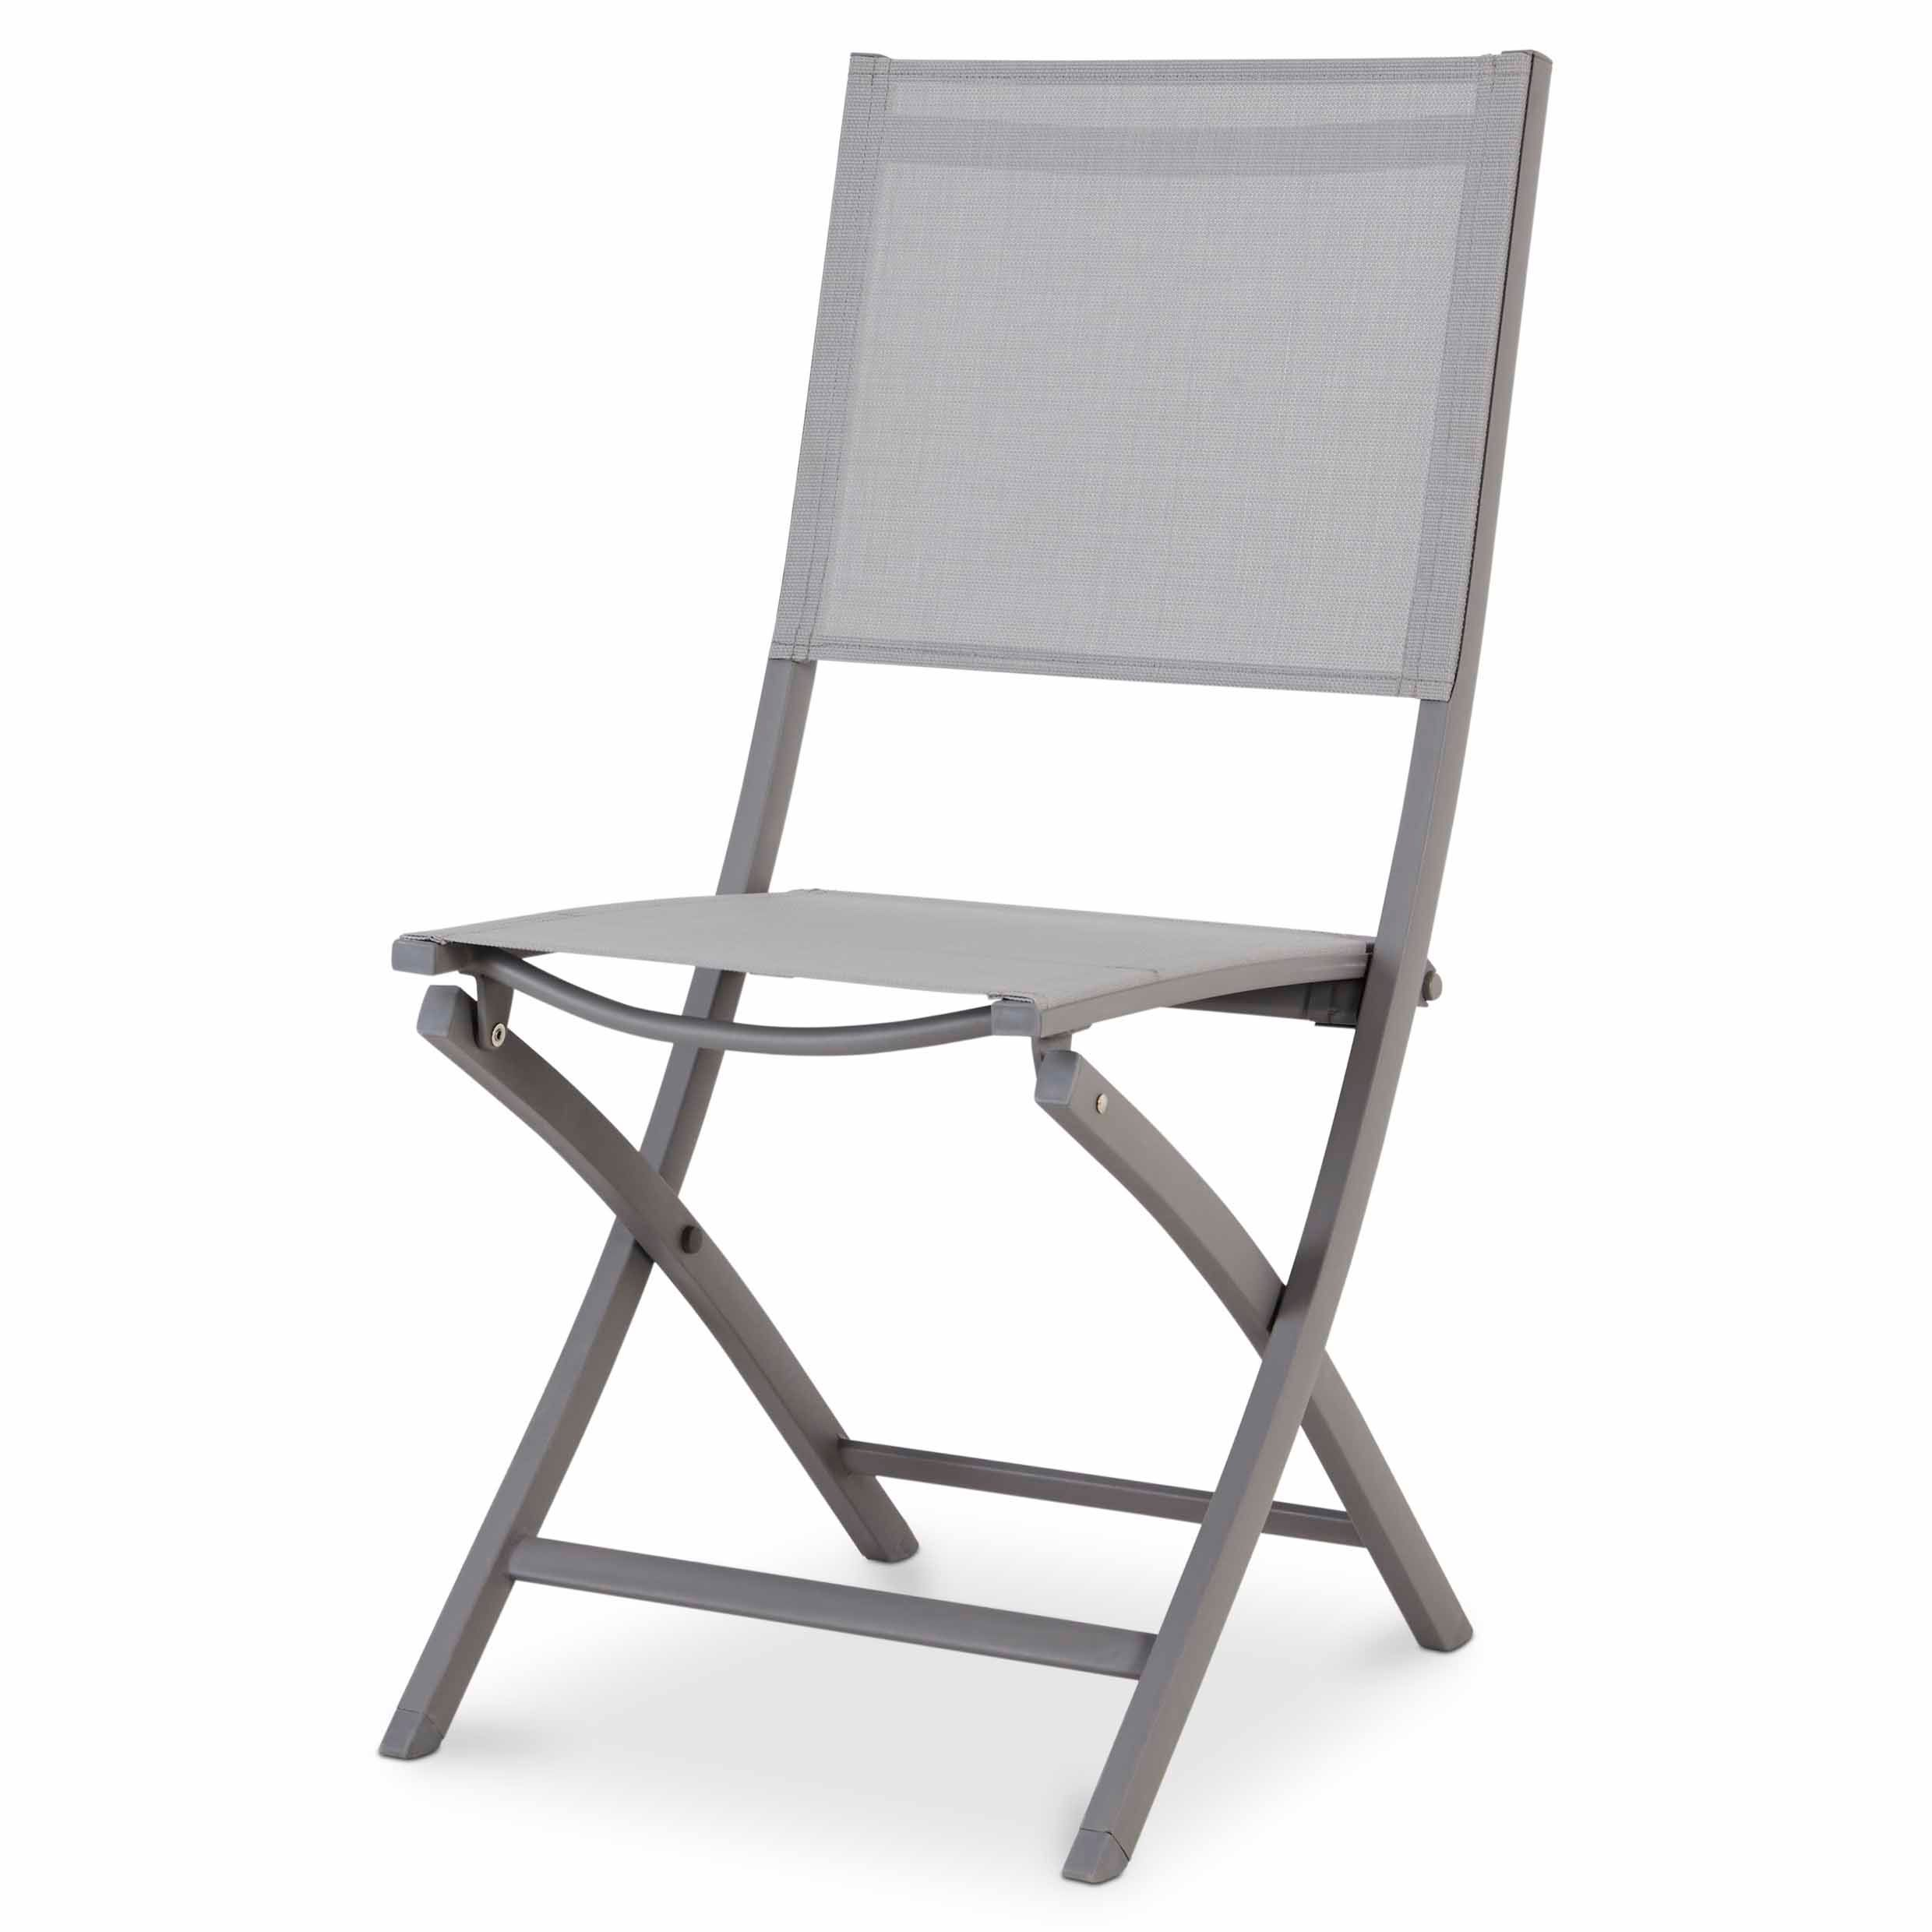 Chaise Blooma Batang Metal Chair Of 1 Departments Diy At B Andq